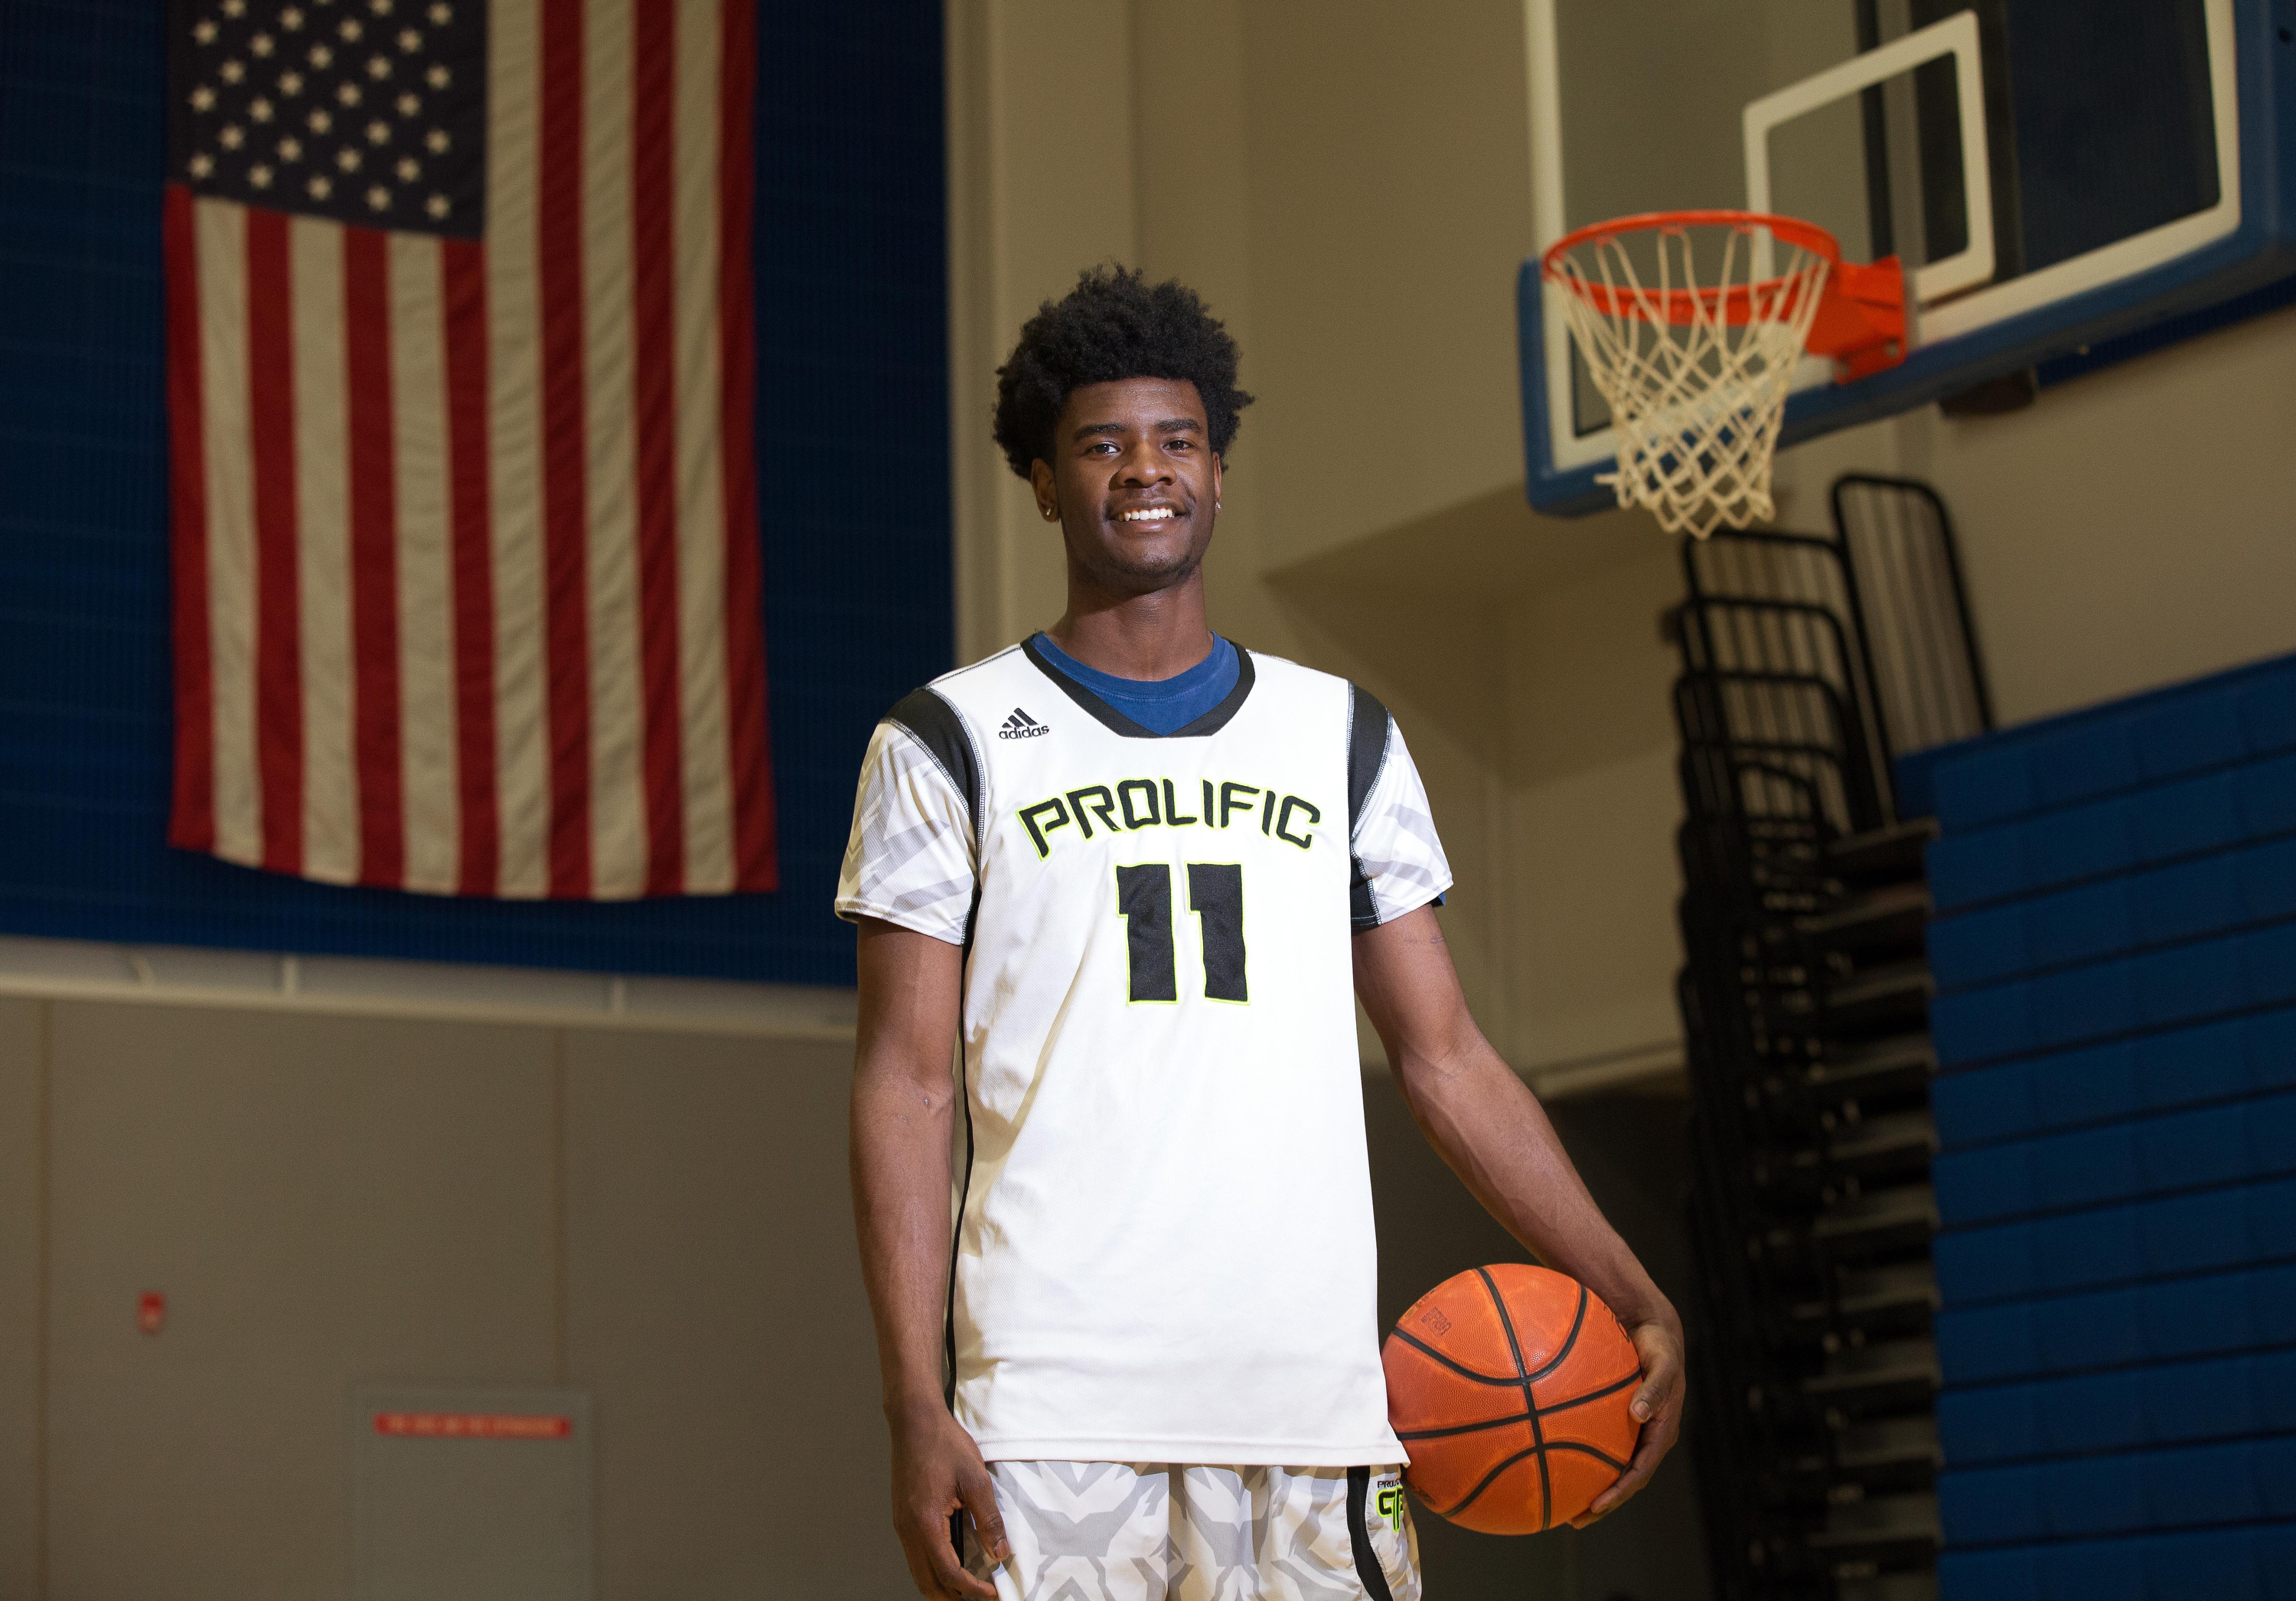 3/22/16 4:48:50 PM -- Fairfield, CA, U.S.A -- Josh Jackson of Prolific Prep in Napa, CA is one of our ALL USA TODAY basketball players of the year candidates. Photos taken at a local gymnasium. -- Photo by Kelley L Cox - USA TODAY Sports Images, Gannett ORG XMIT: US 134652 Josh Jackson 3/22/201 [Via MerlinFTP Drop]